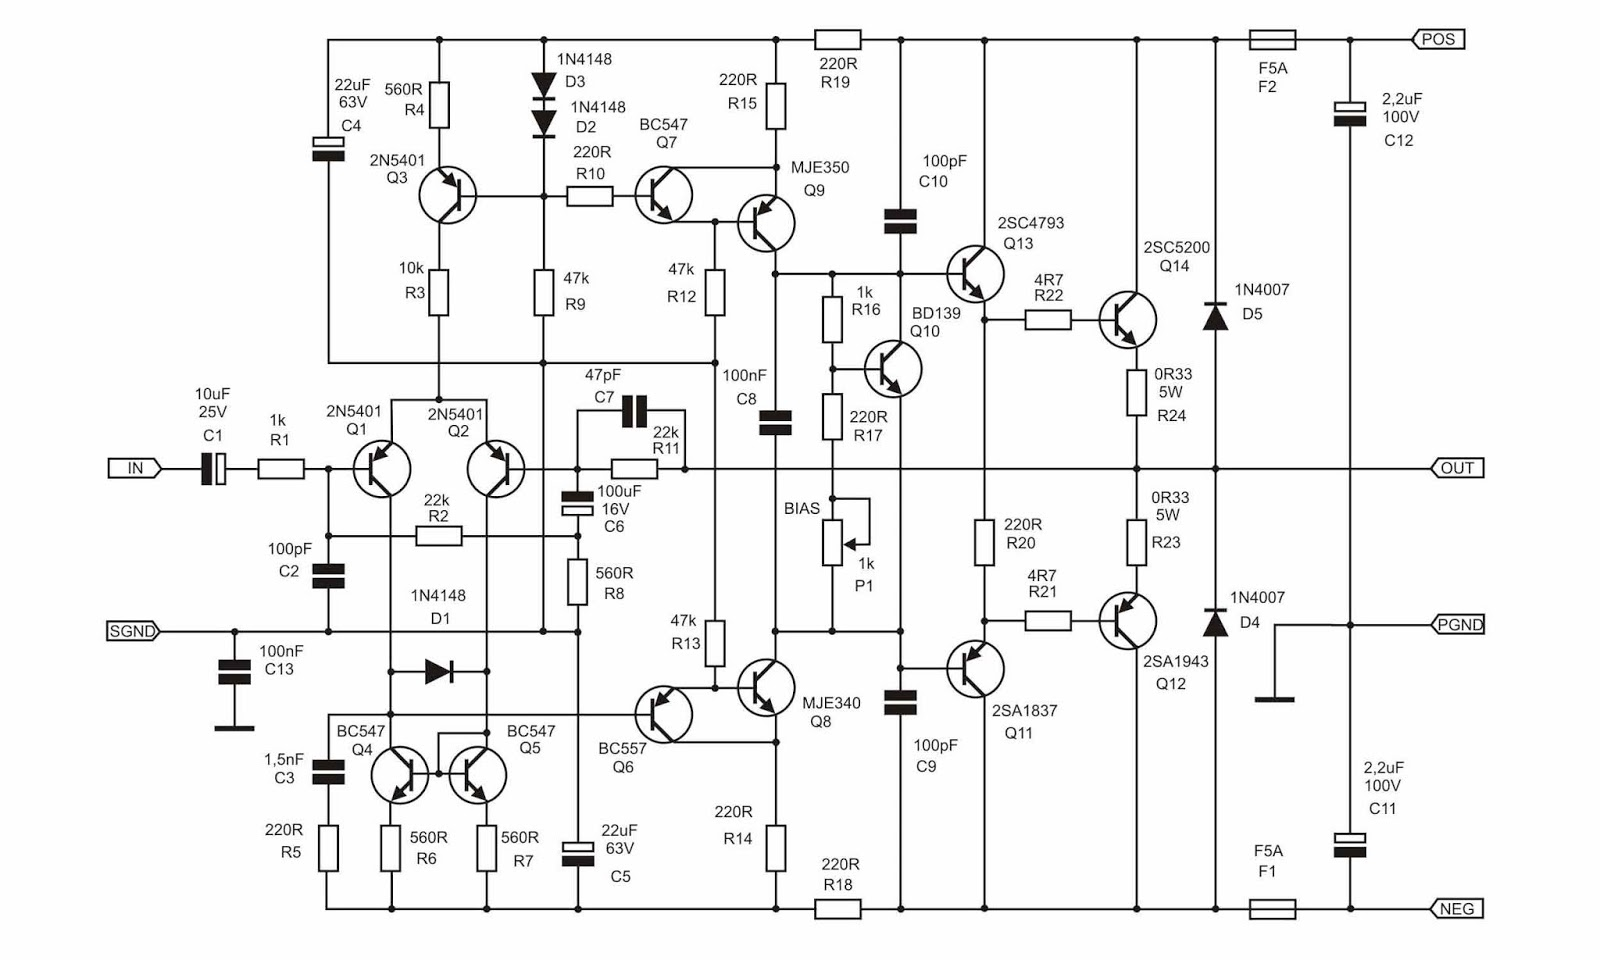 80 watt mono 2sc5200 2sa1943 ultimate fidelity amplifier circuit schematic [ 1600 x 960 Pixel ]